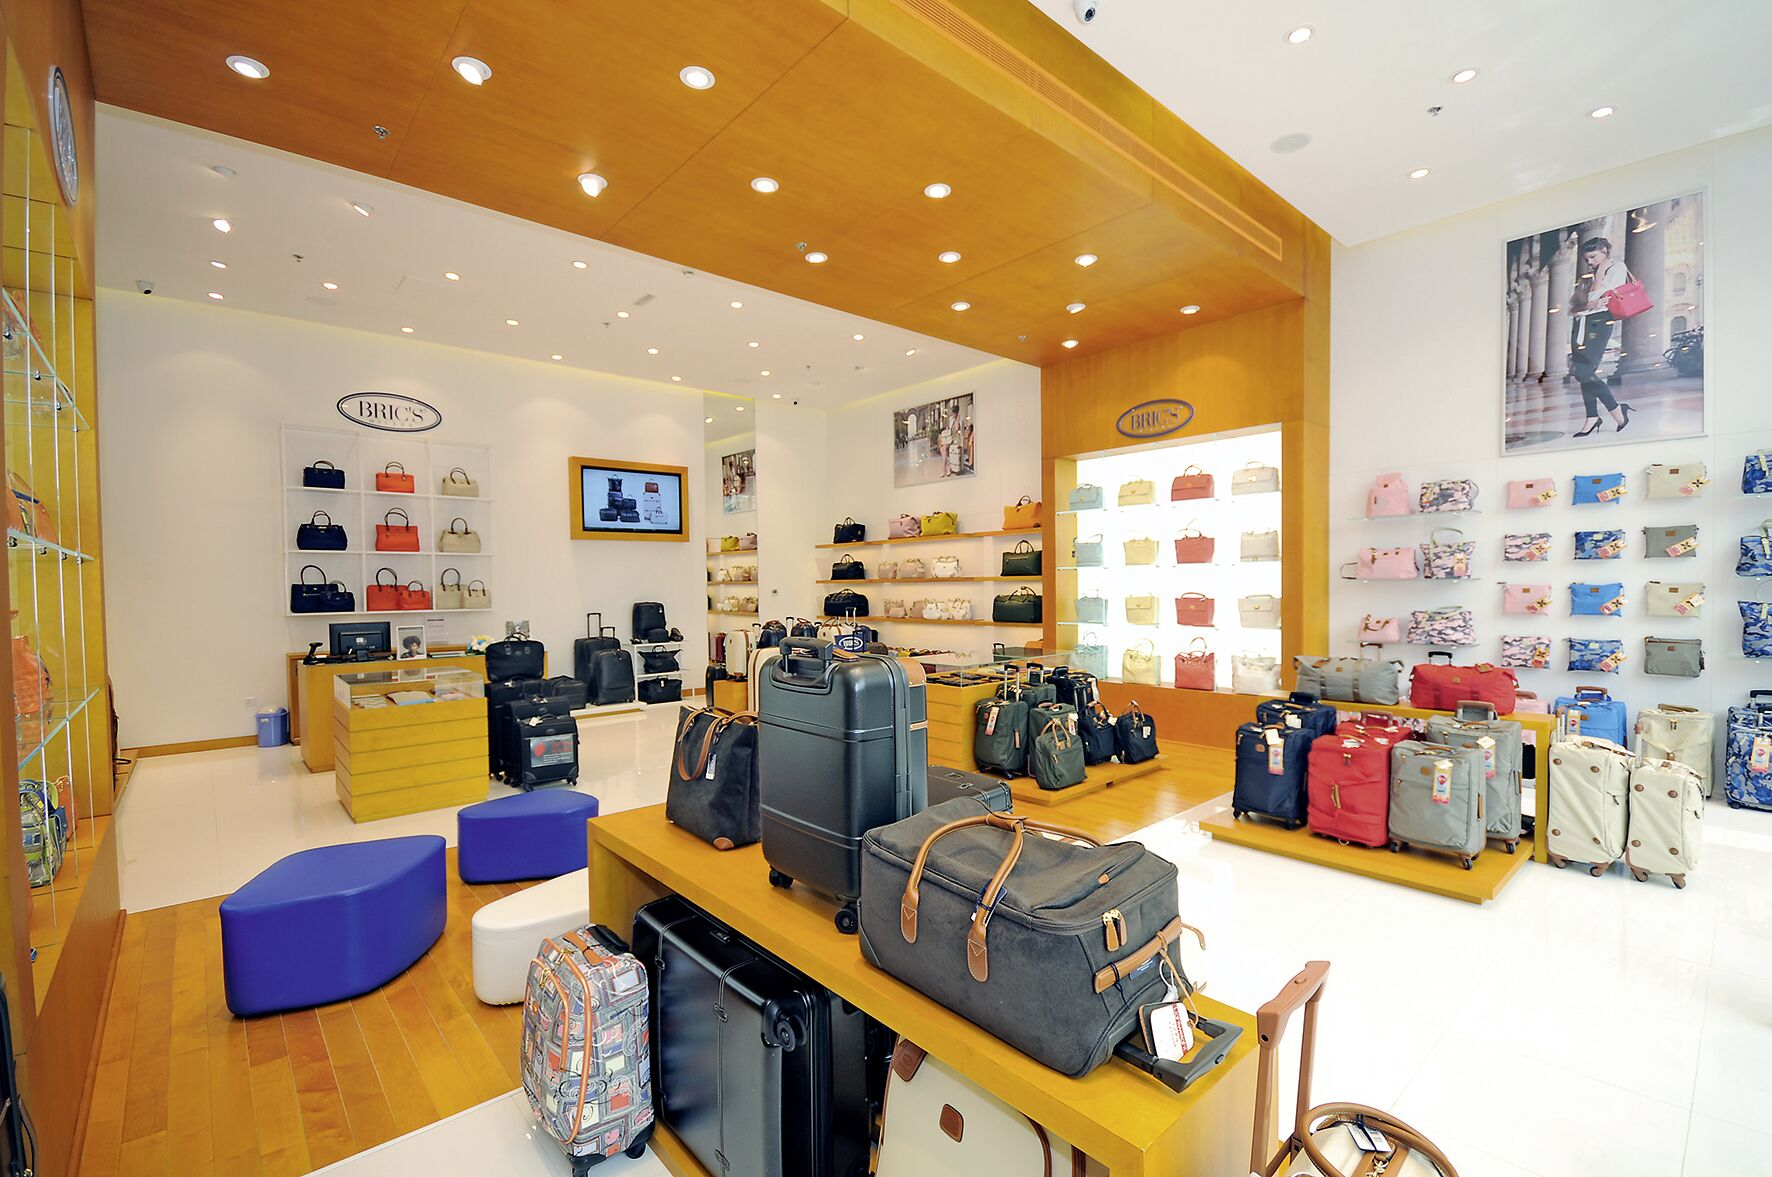 BRIC'S Luggage Store